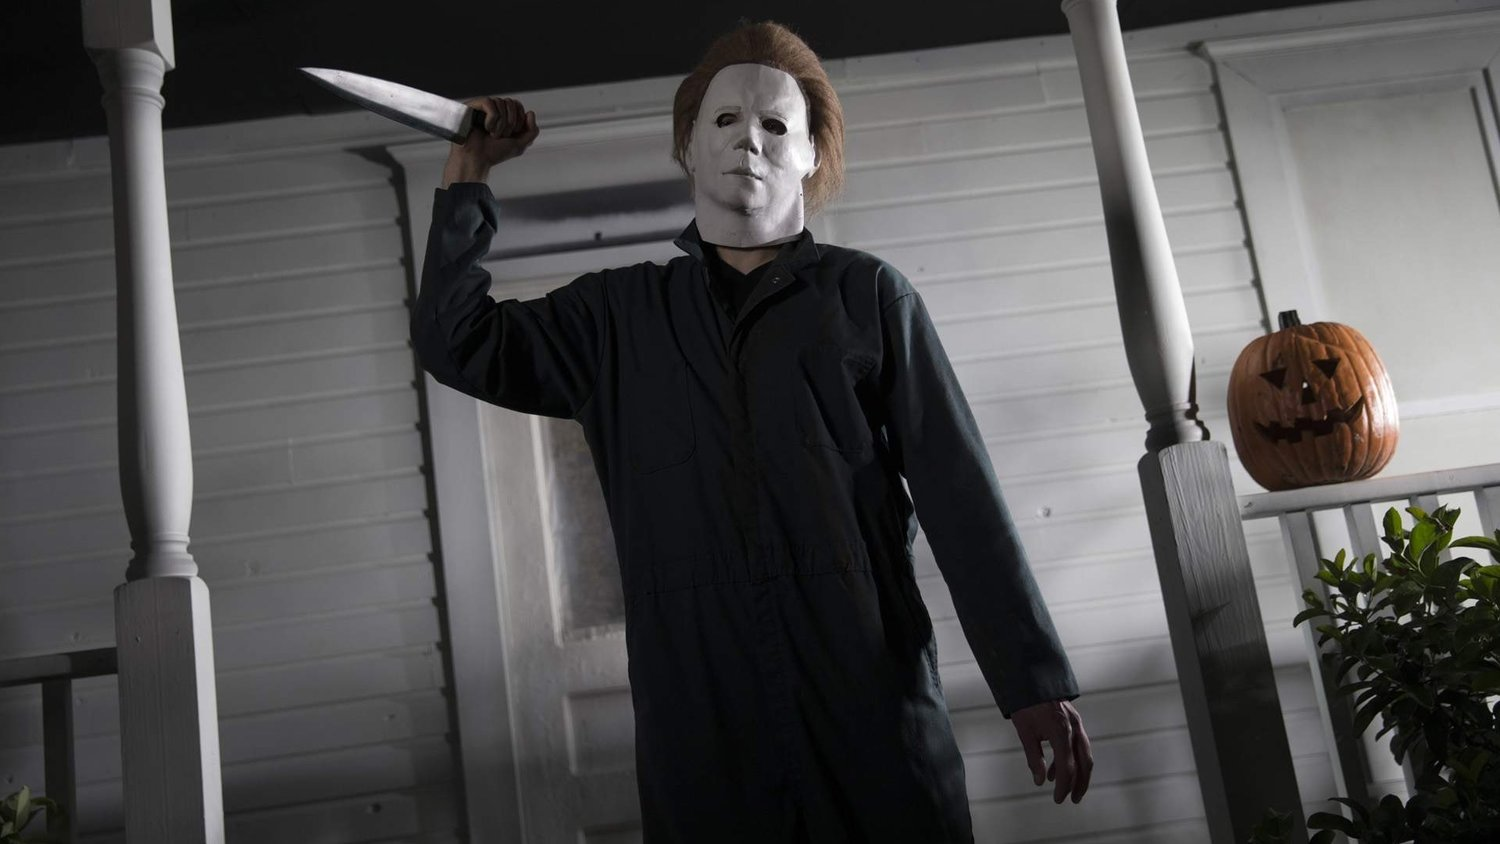 The New HALLOWEEN Film Is a Sequel Set After the Events of HALLOWEEN II